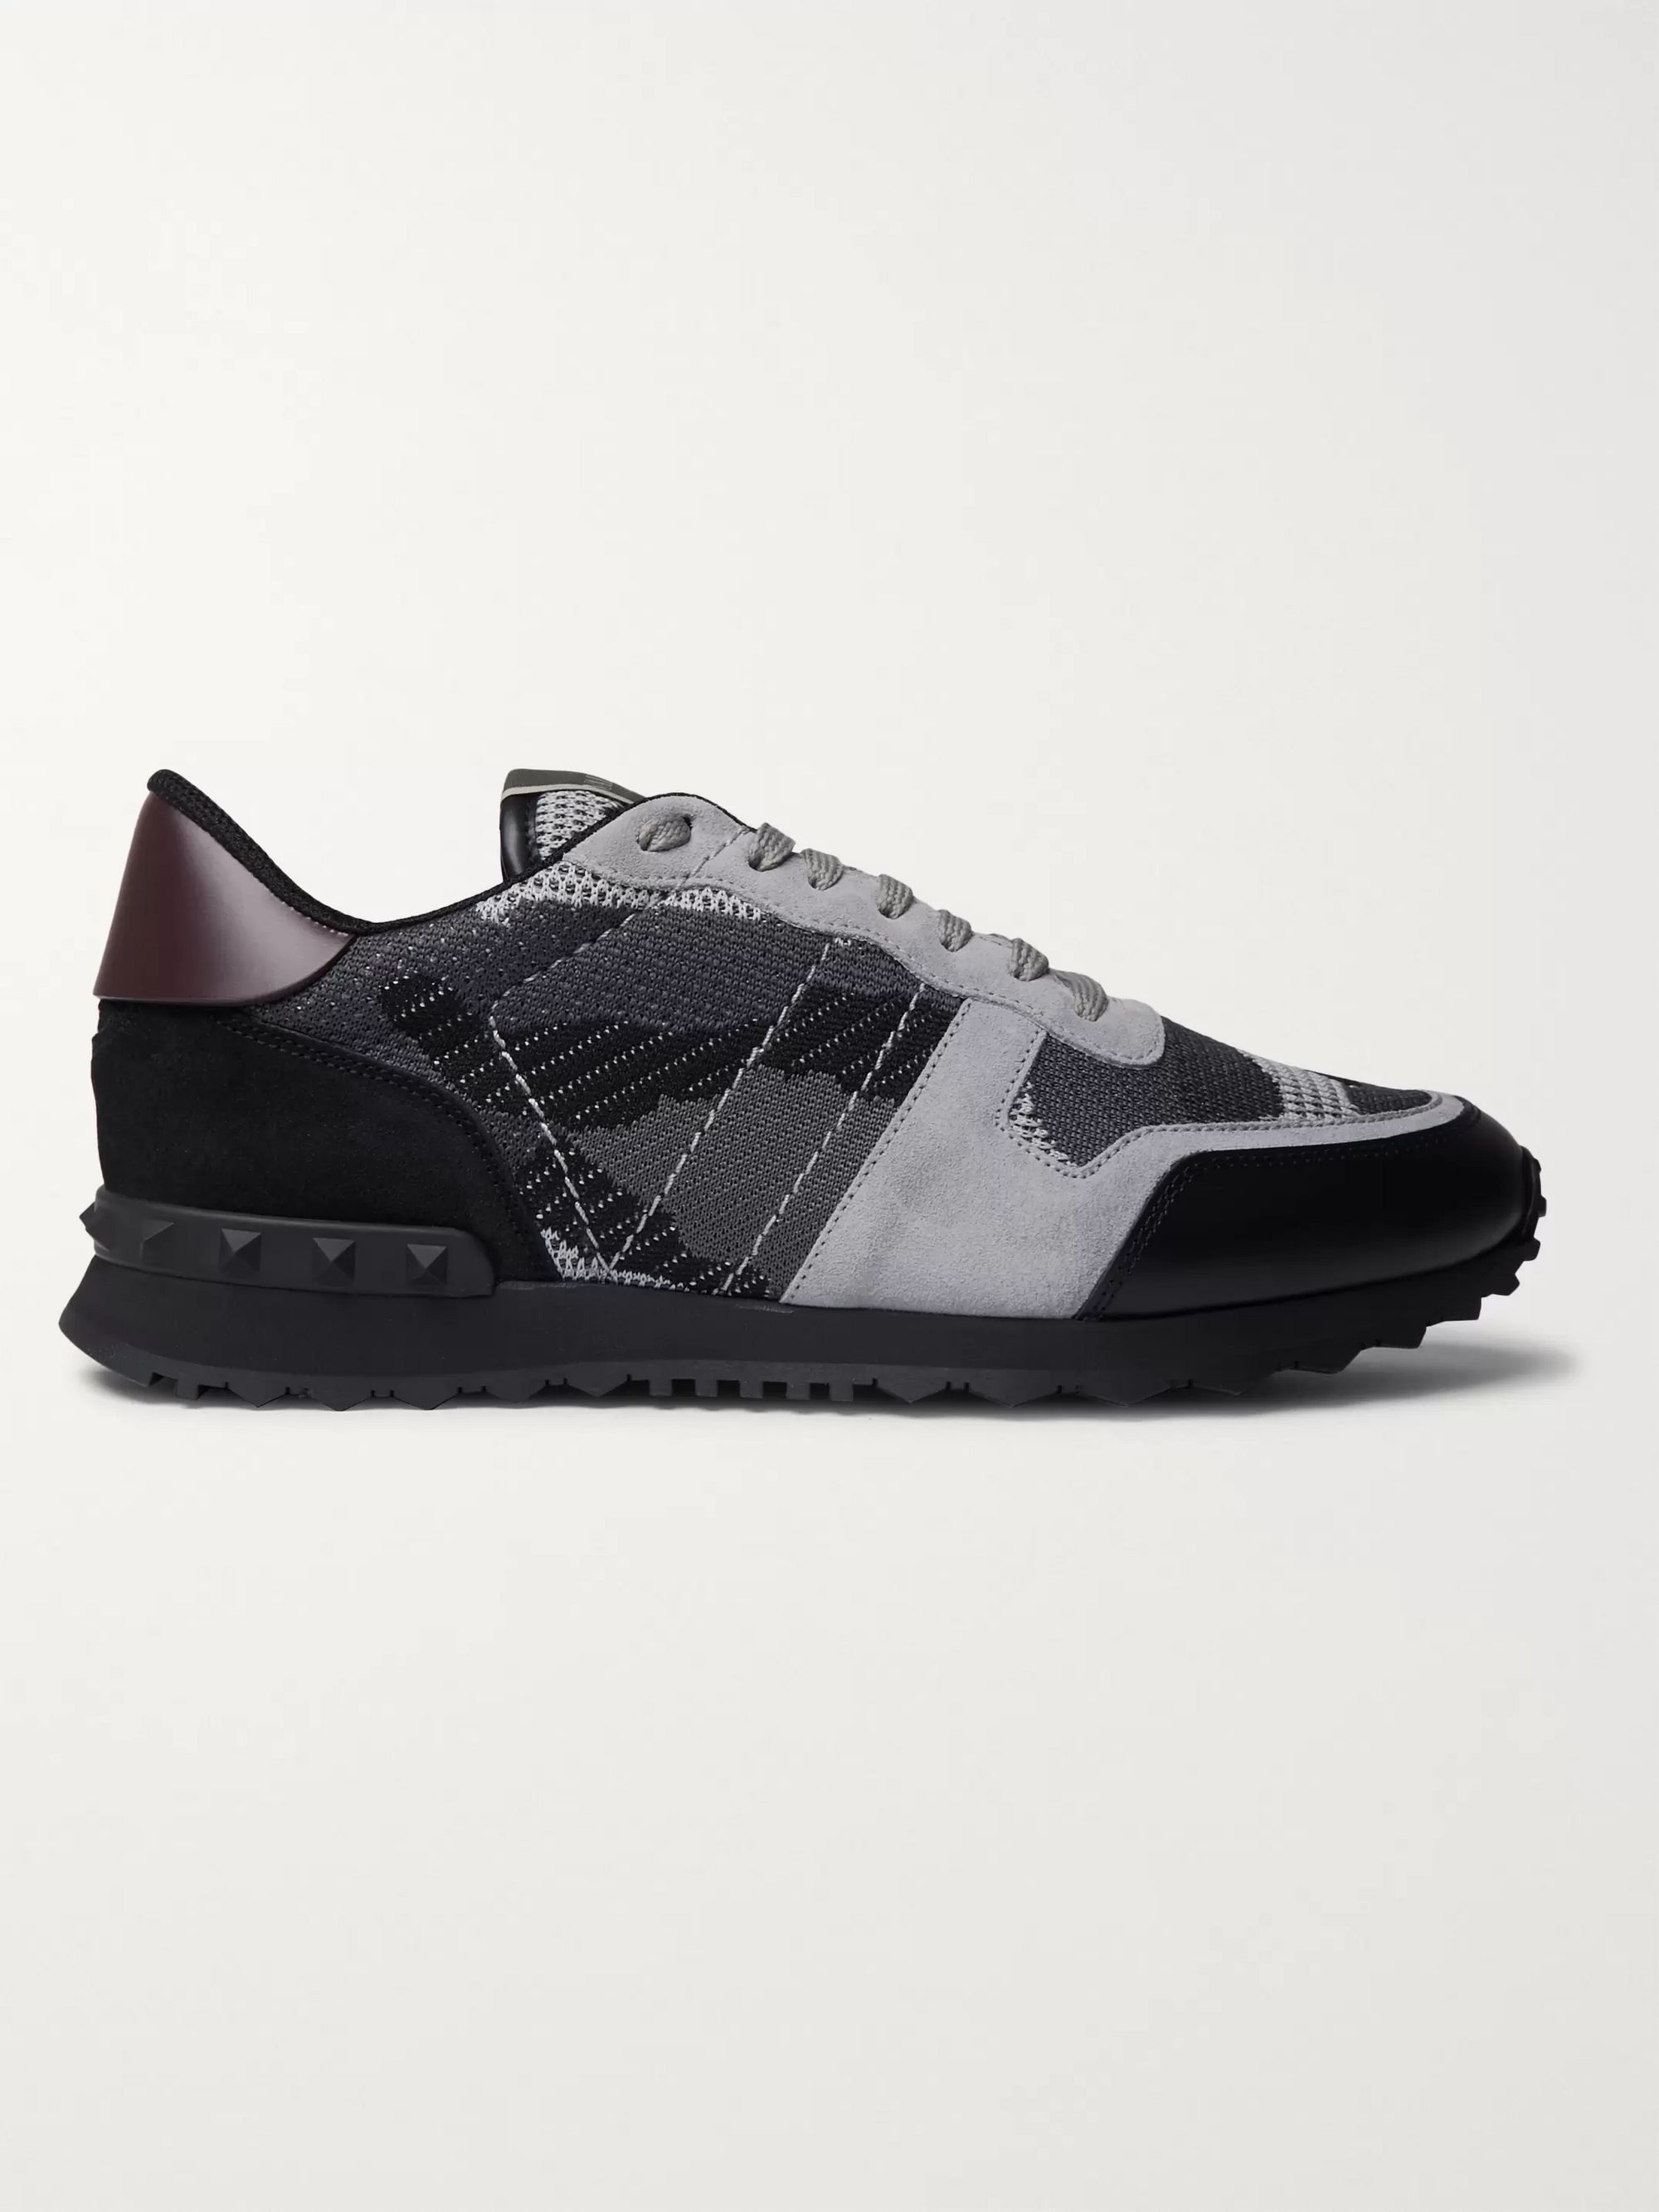 Valentino Valentino Garavani Rockrunner Camouflage-Print Stretch-Knit, Leather and Suede Sneakers